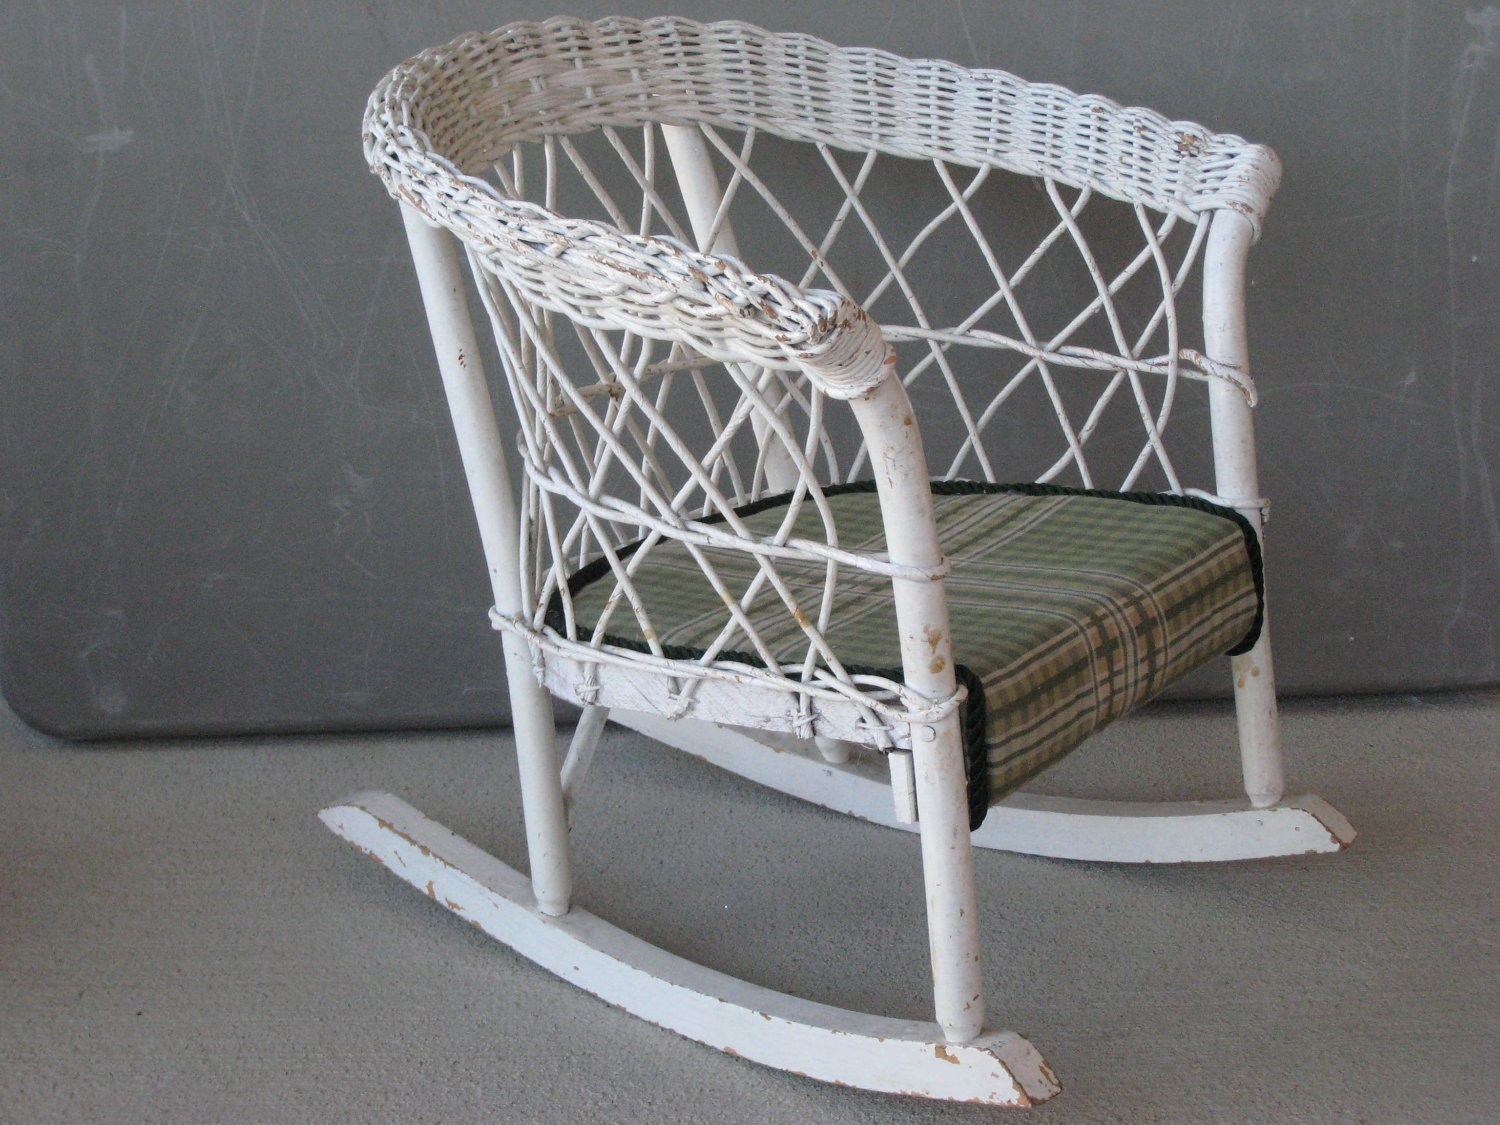 antique wicker rocker rocking chair child size 0218 w. Black Bedroom Furniture Sets. Home Design Ideas